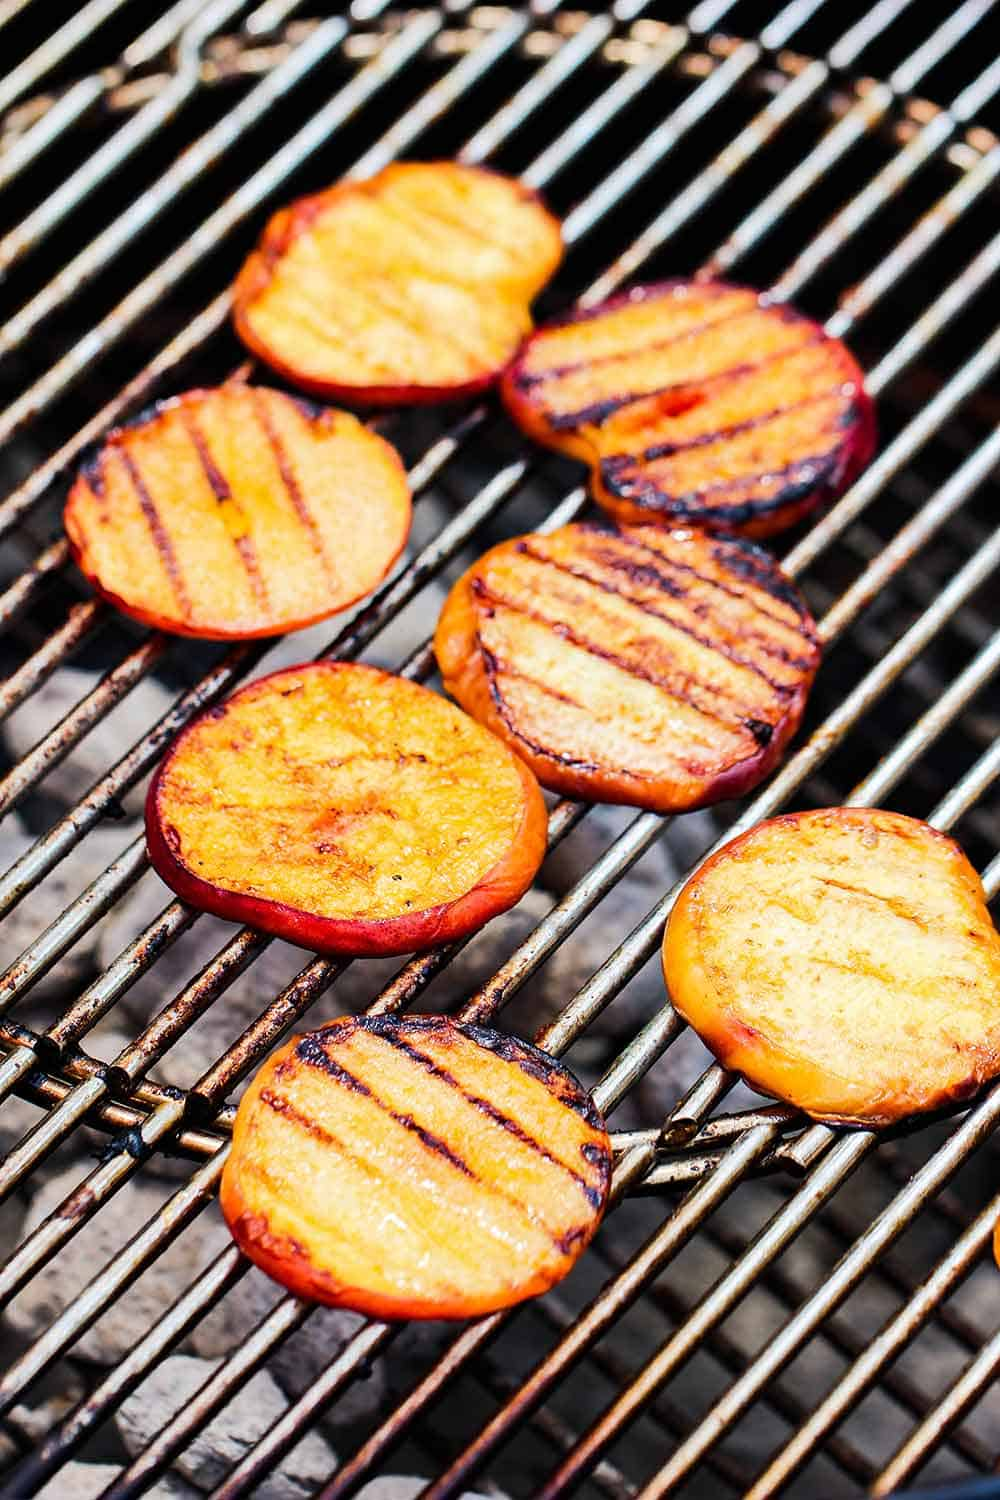 Sliced peaches on a charcoal grill